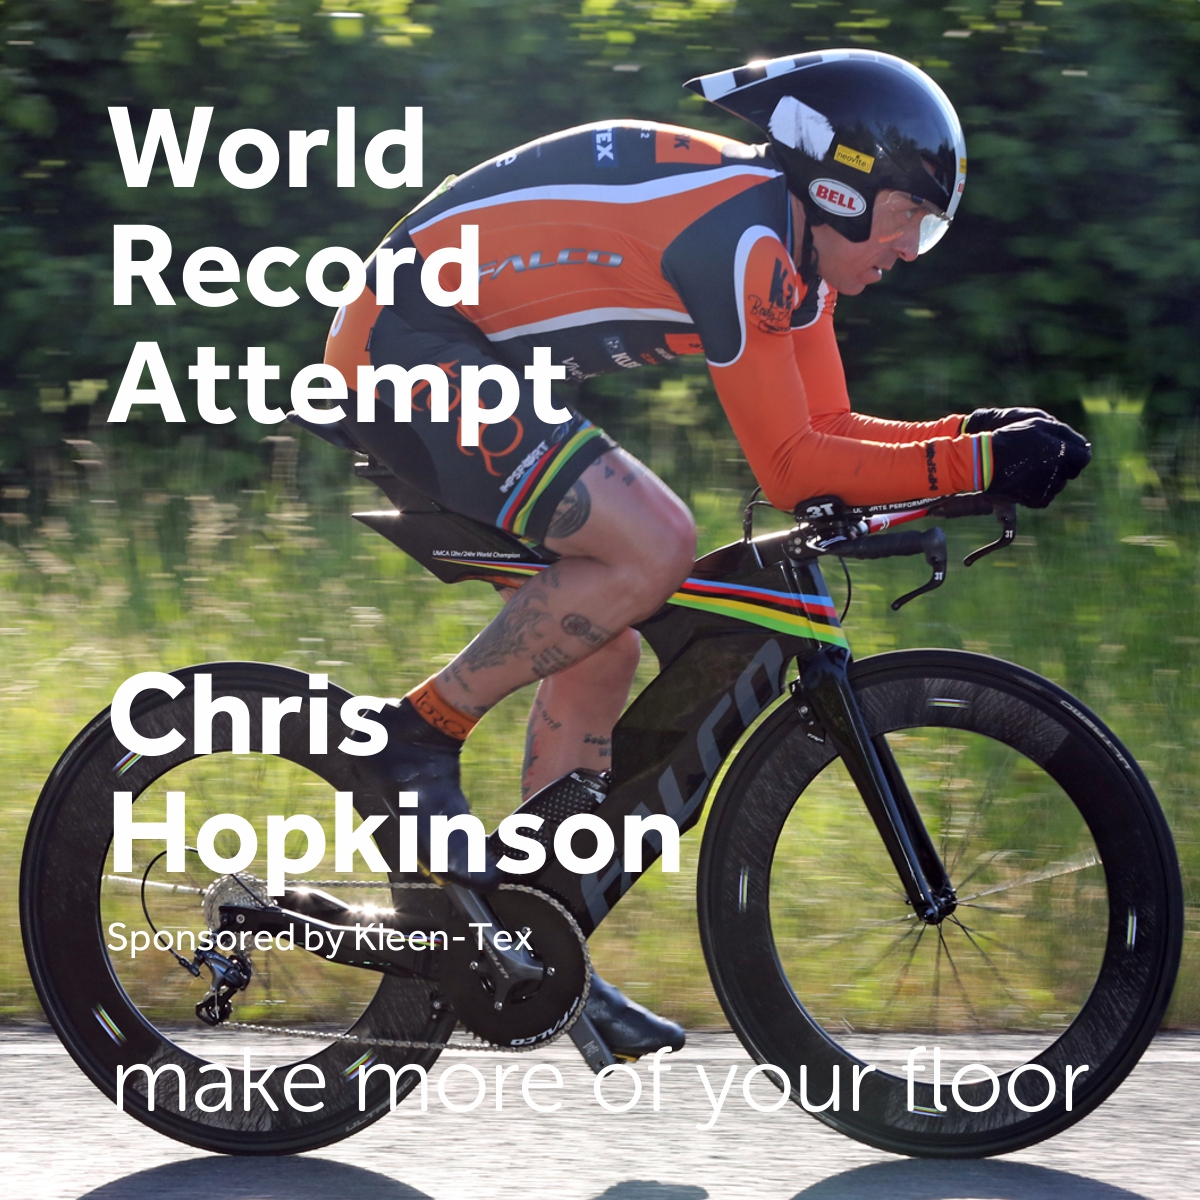 New World Record Attempt by Chris Hopkinson